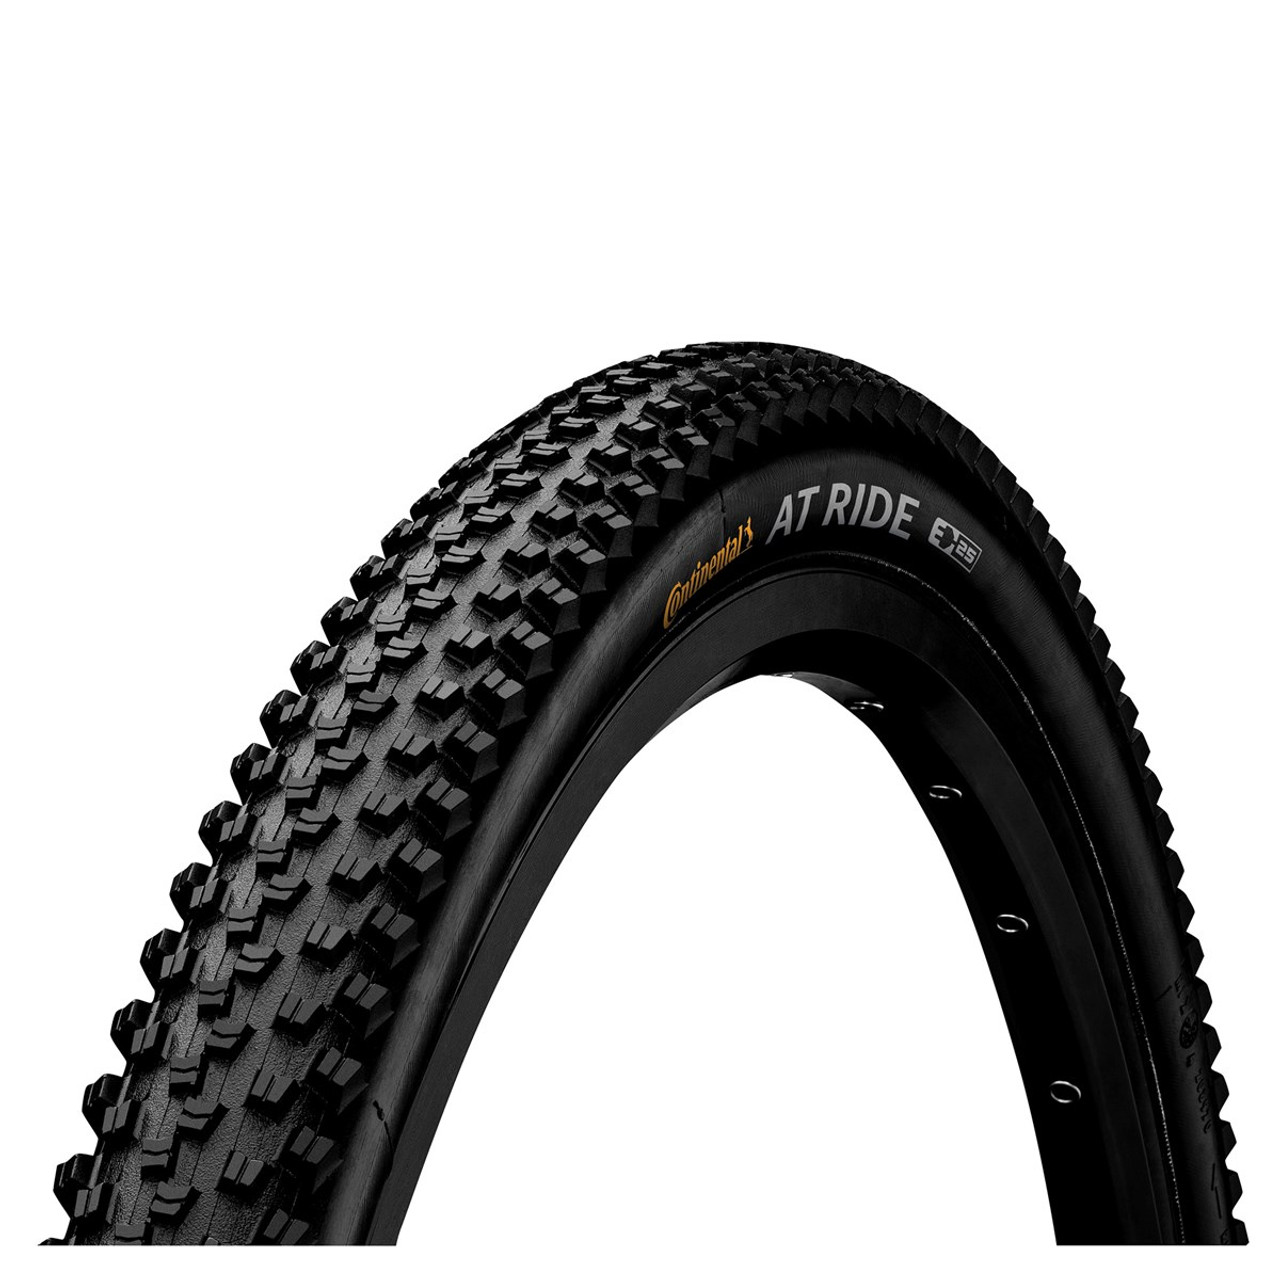 Continental AT Ride Folding Tyre